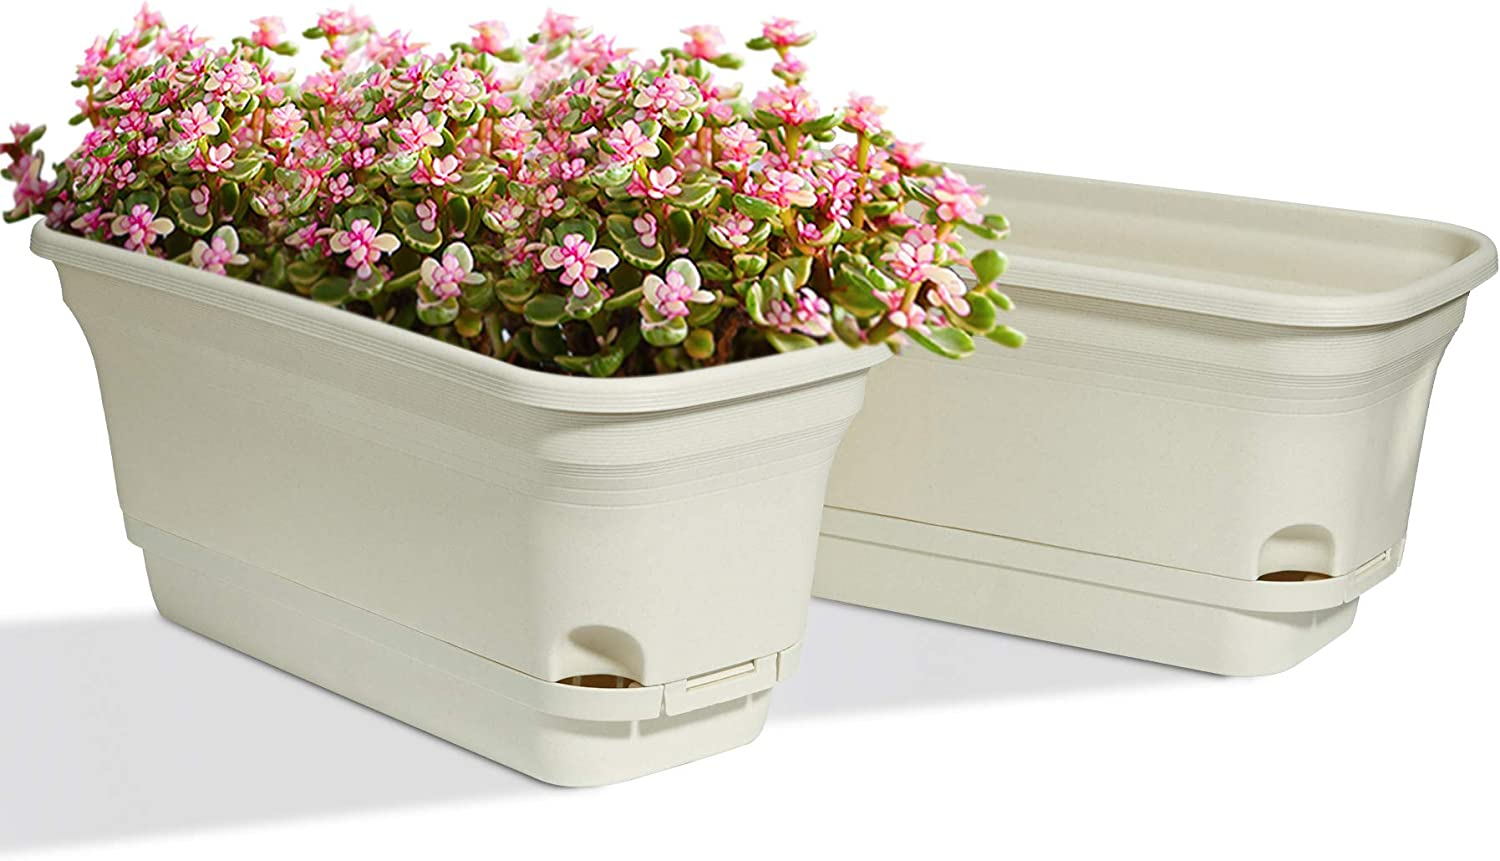 T4u 15 Inch Self Watering Planters Plastic Rectangular Plant Pot Modern Decorative Flower Pot Window Box For All House Plants Flowers Herbs African Violets Succulents Beige Set Of 2 Amazon Ca Home